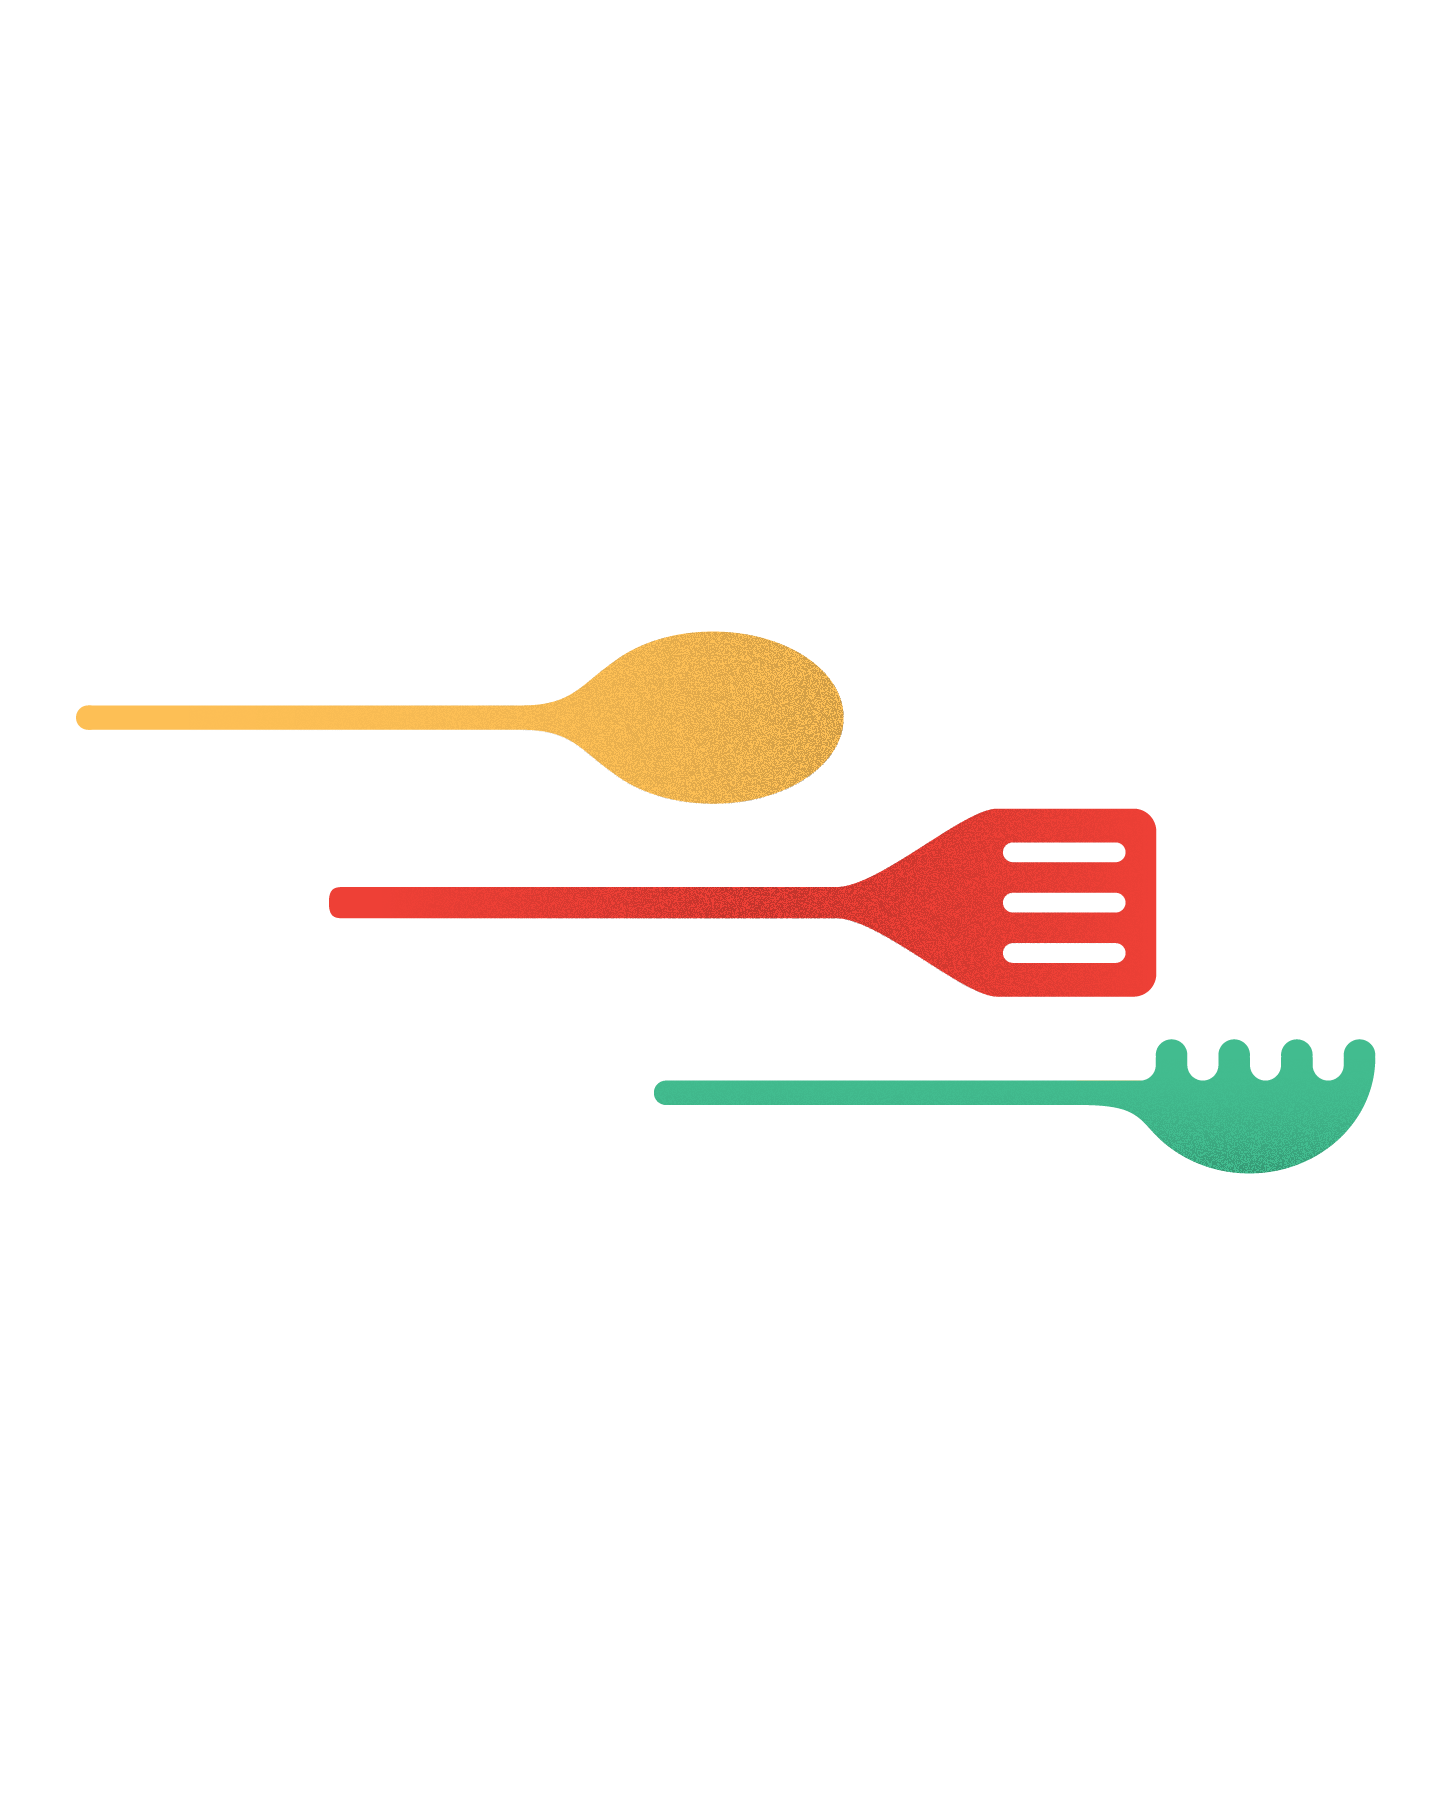 Illustration of cooking utensils (59)